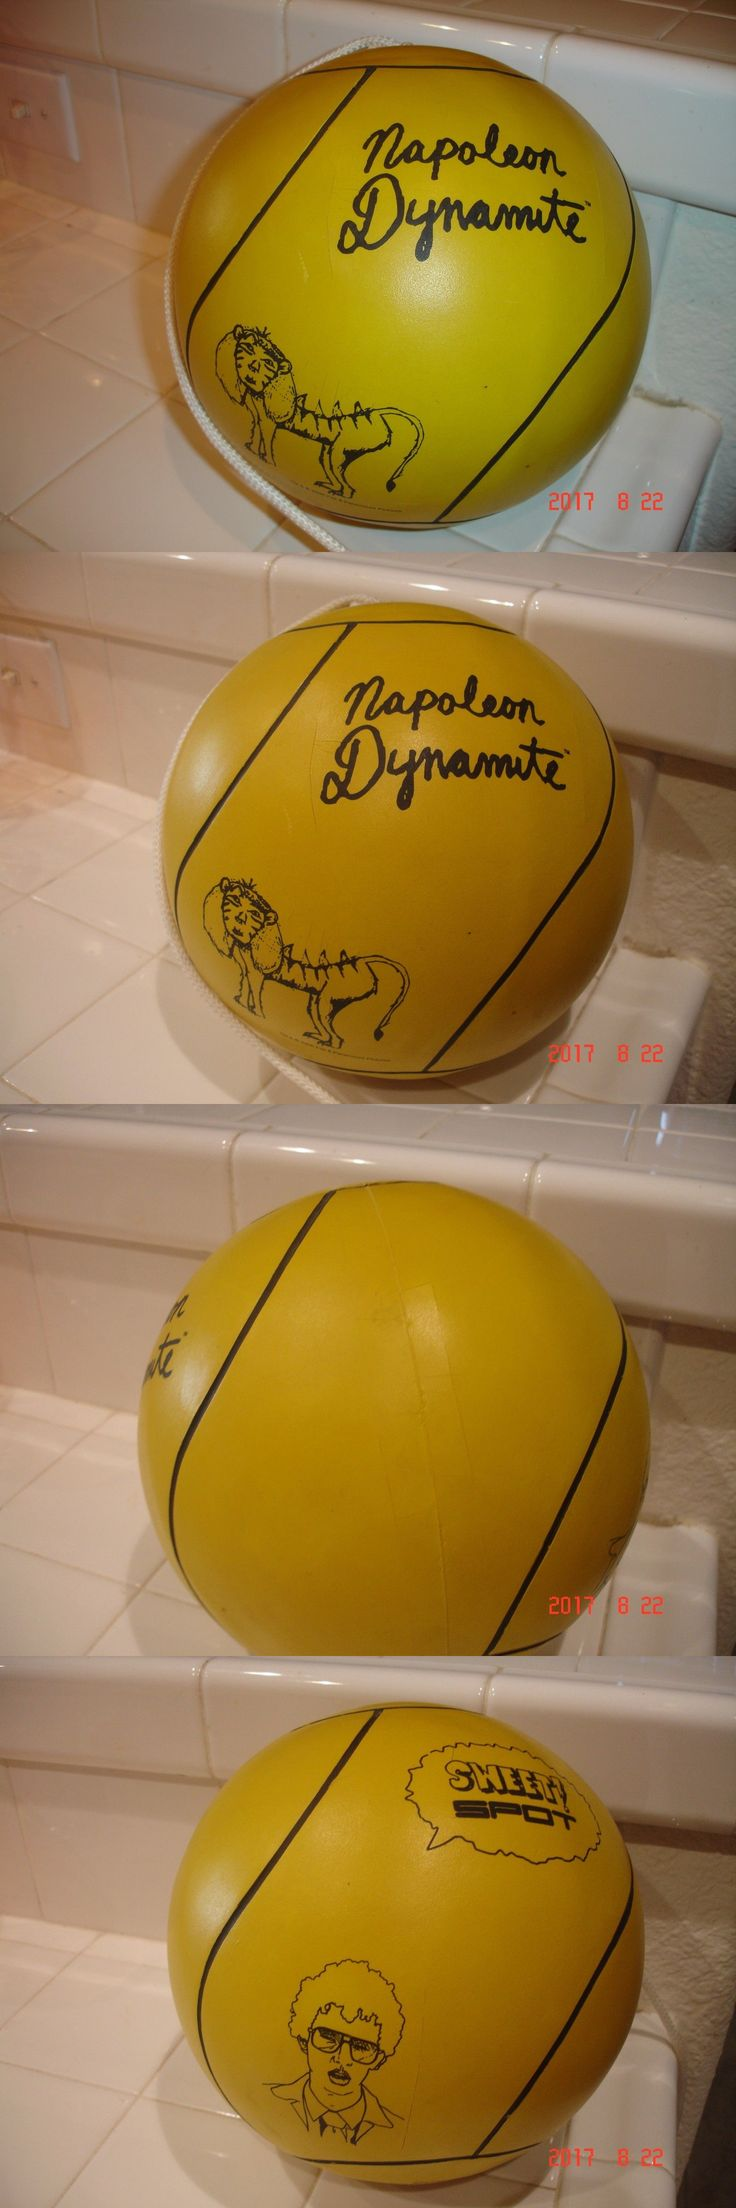 Vecteur clipart de main sur 201 cologie conscience image concept - Tetherball 159080 Rare Napoleon Dynamite Yellow Ball Tetherball Sketches Drawings W Rope 8 Dia